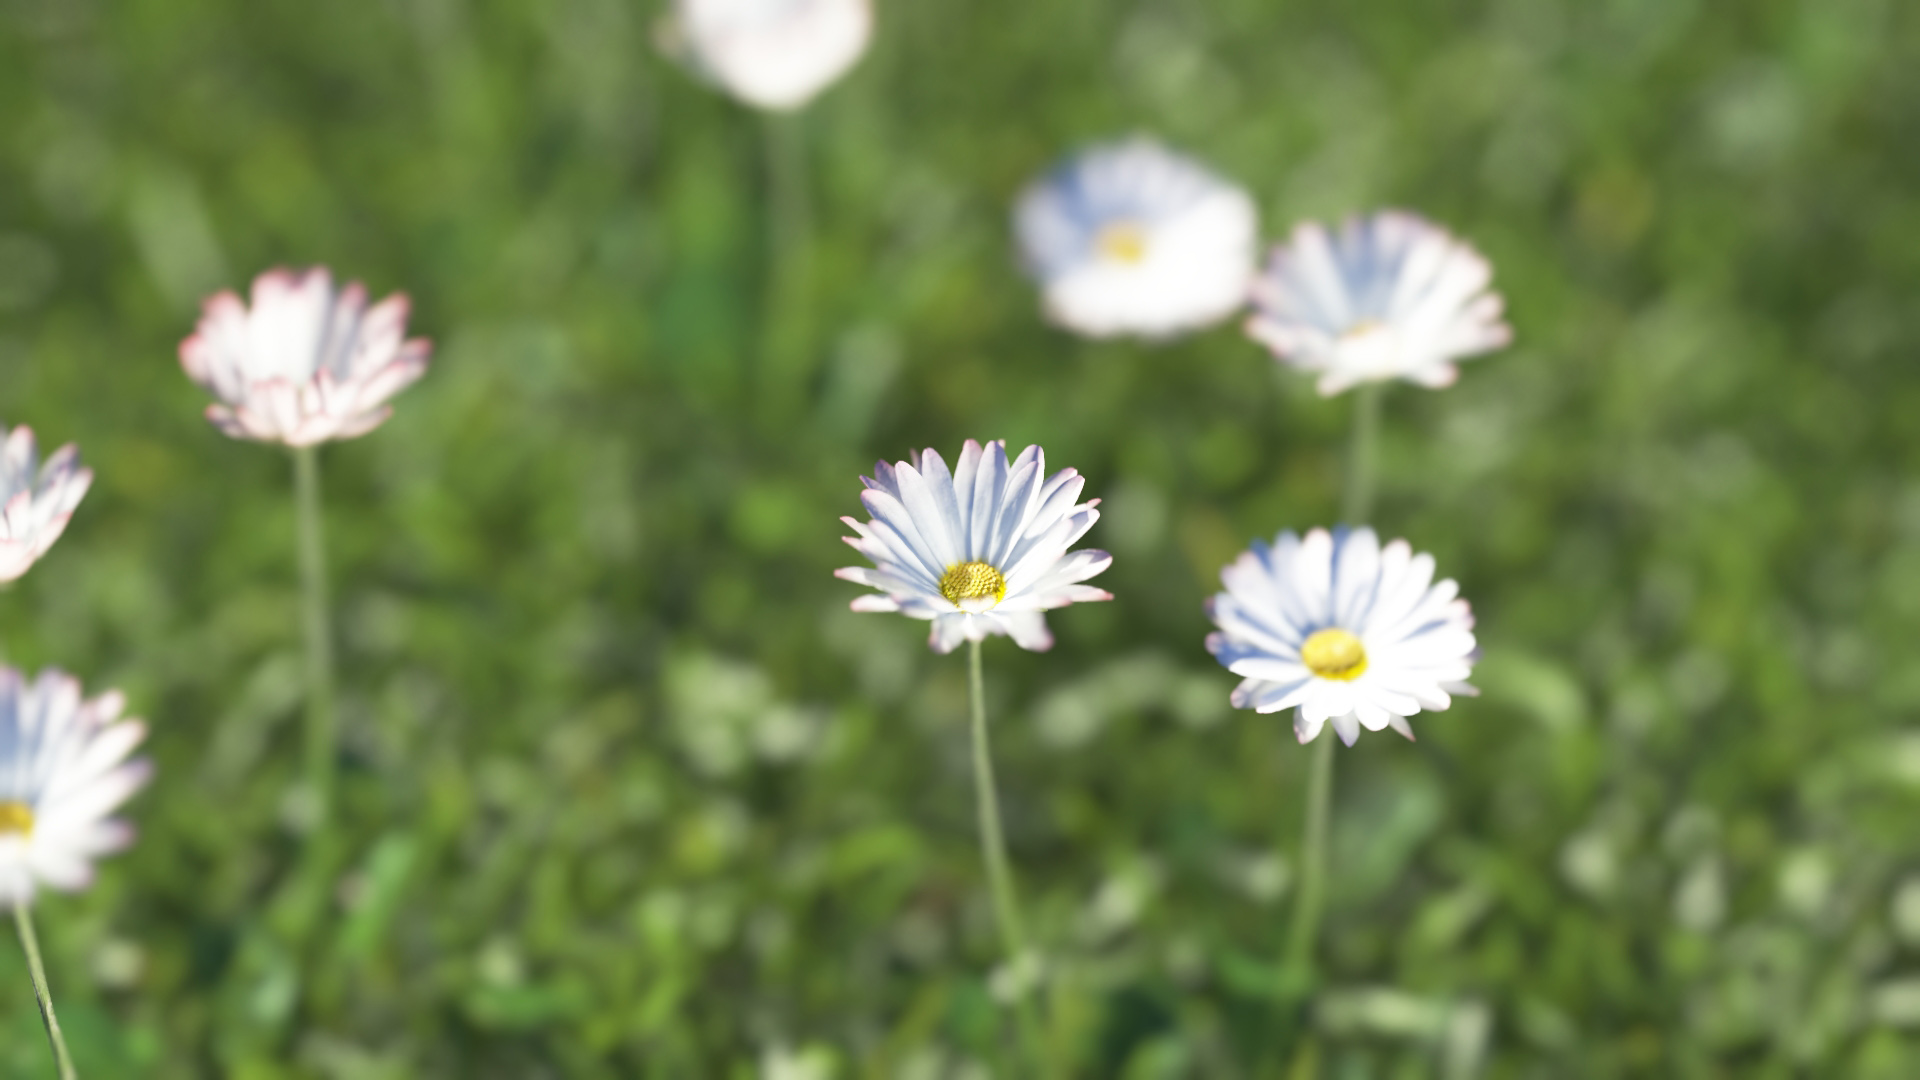 3D model of the Common daisy Bellis perennis close-up